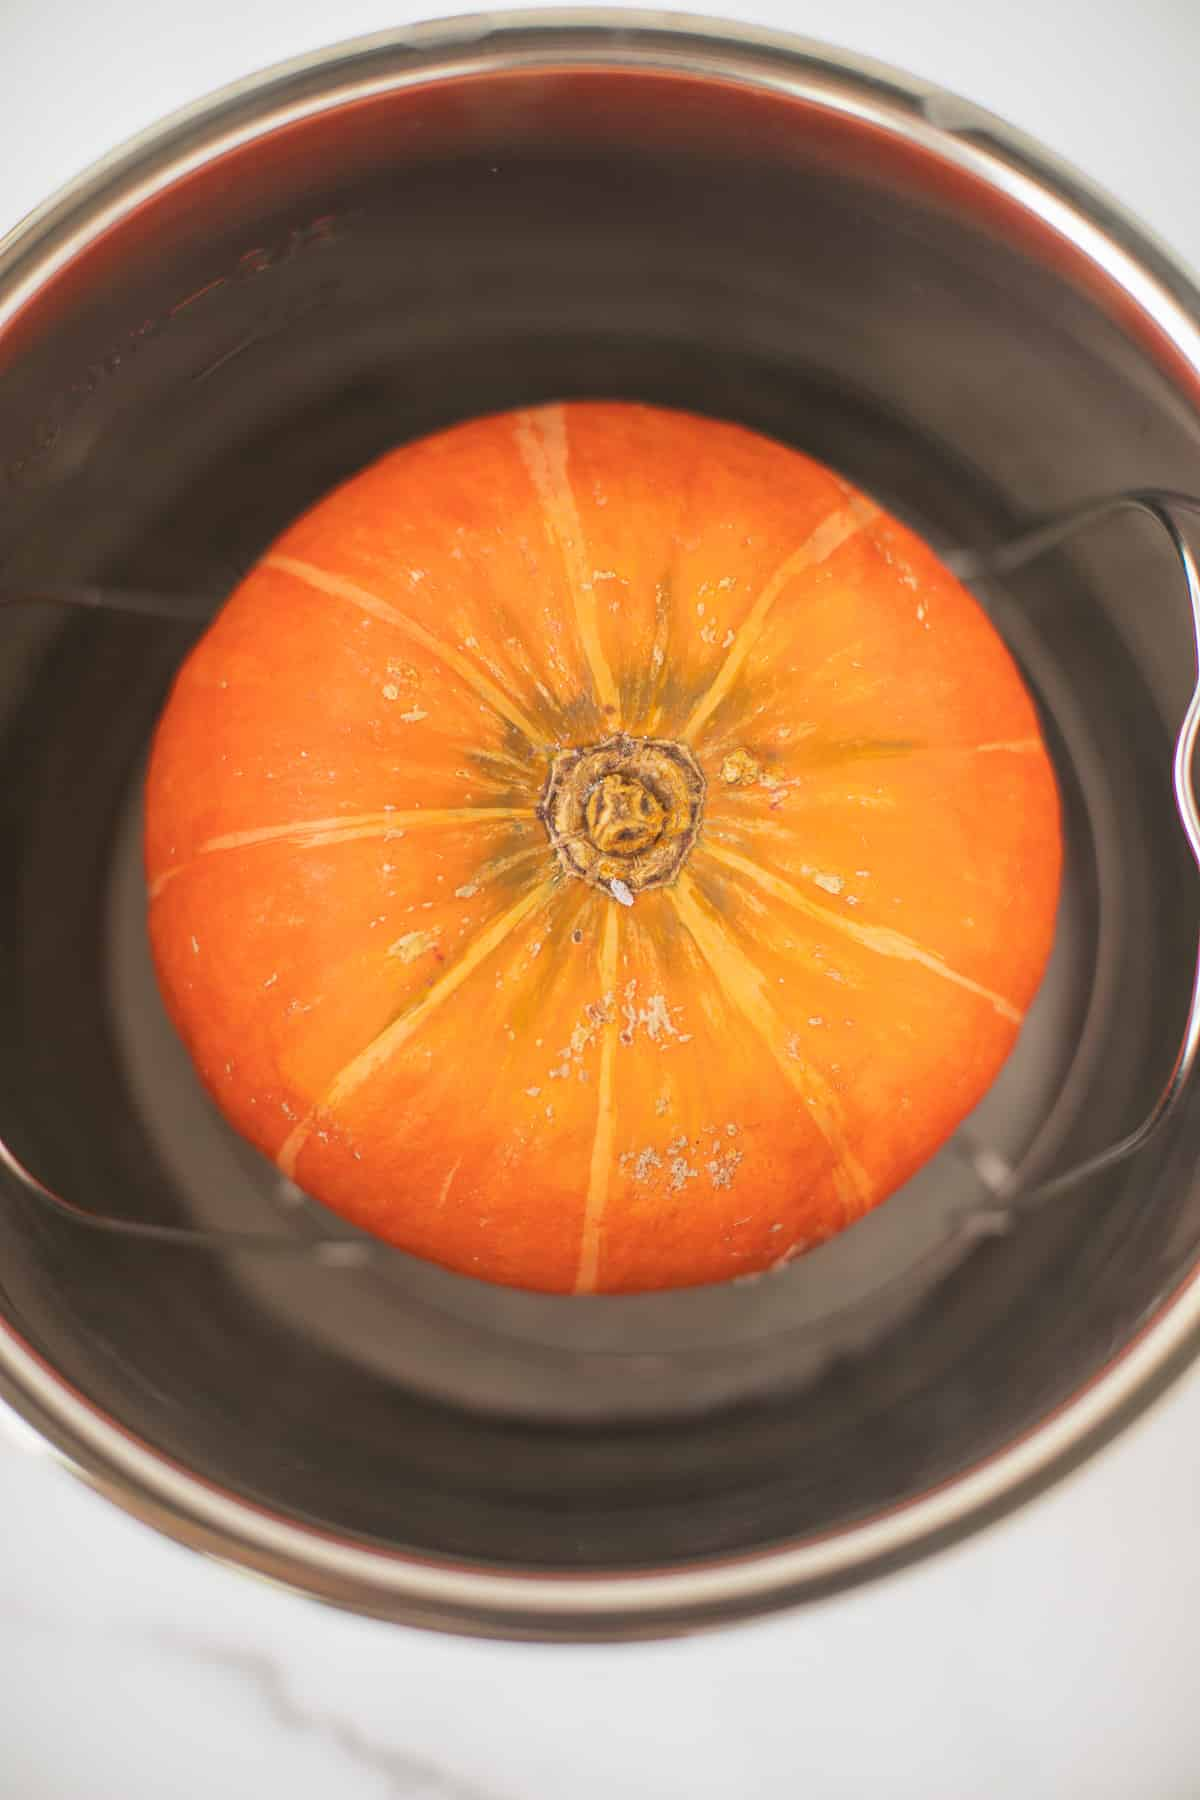 kabocha squash in an instant pot ready to be cooked